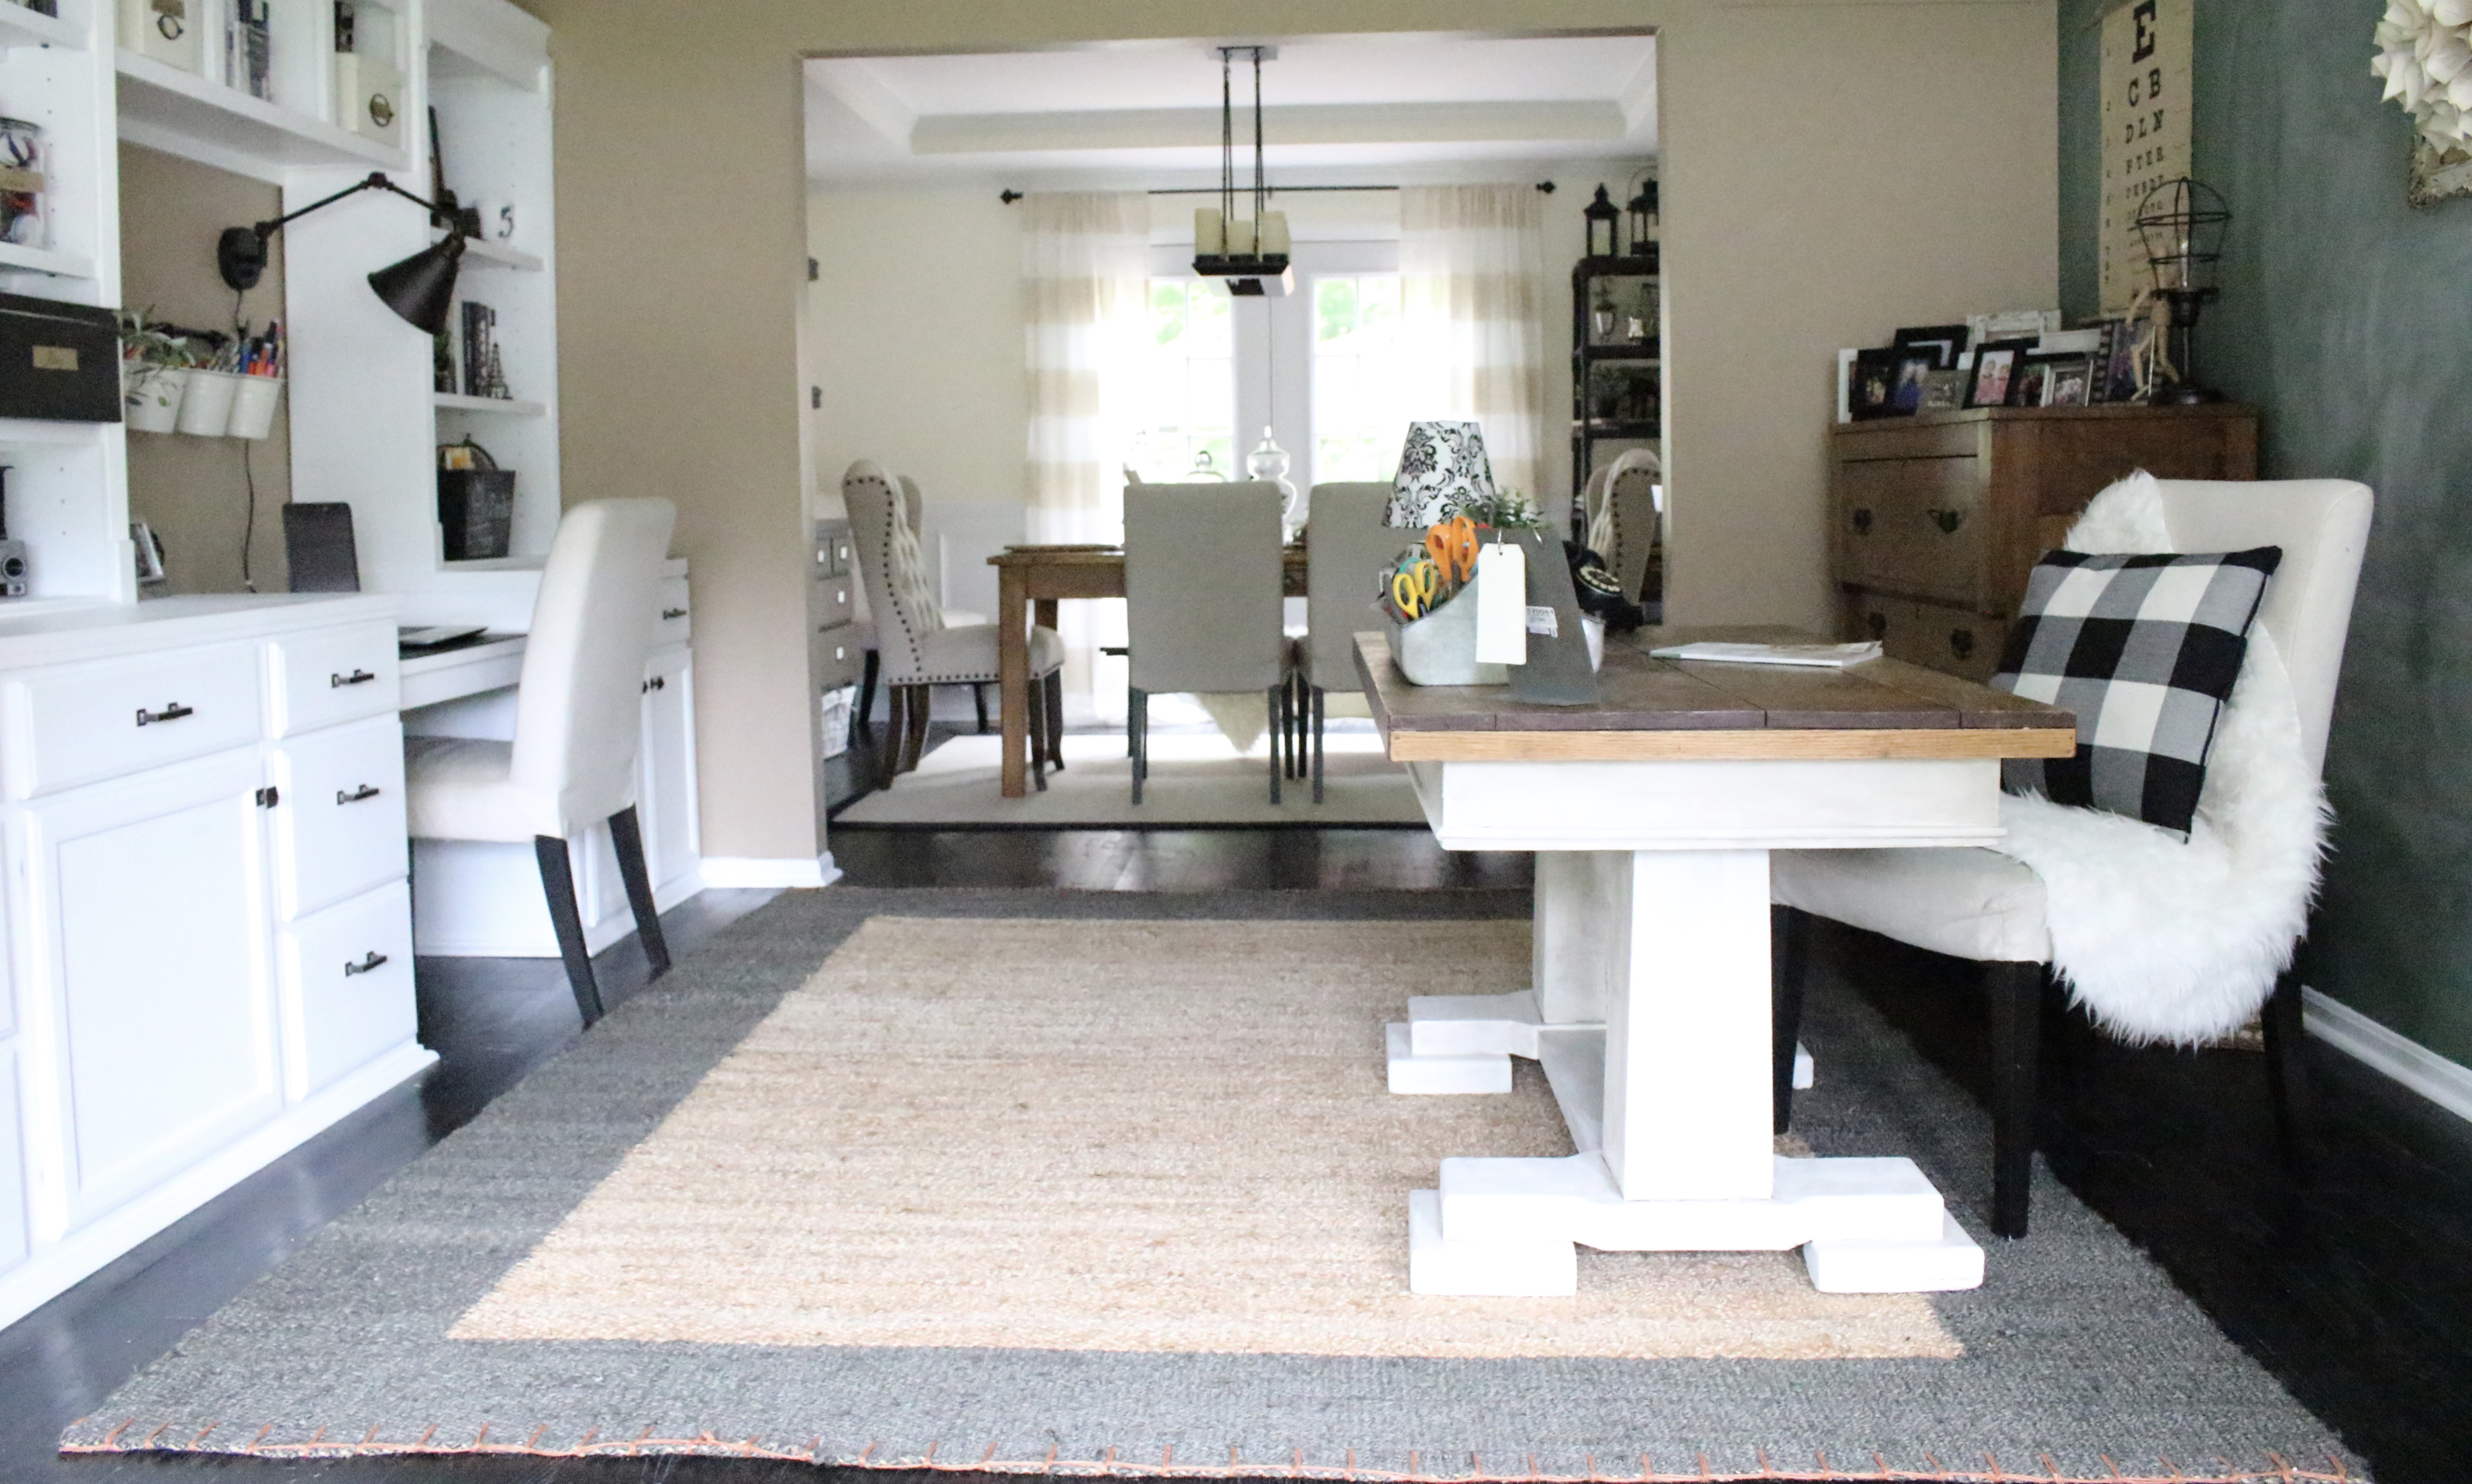 One Room Living Space one room challenge {orc} week #6: reveal of a functional & stylish